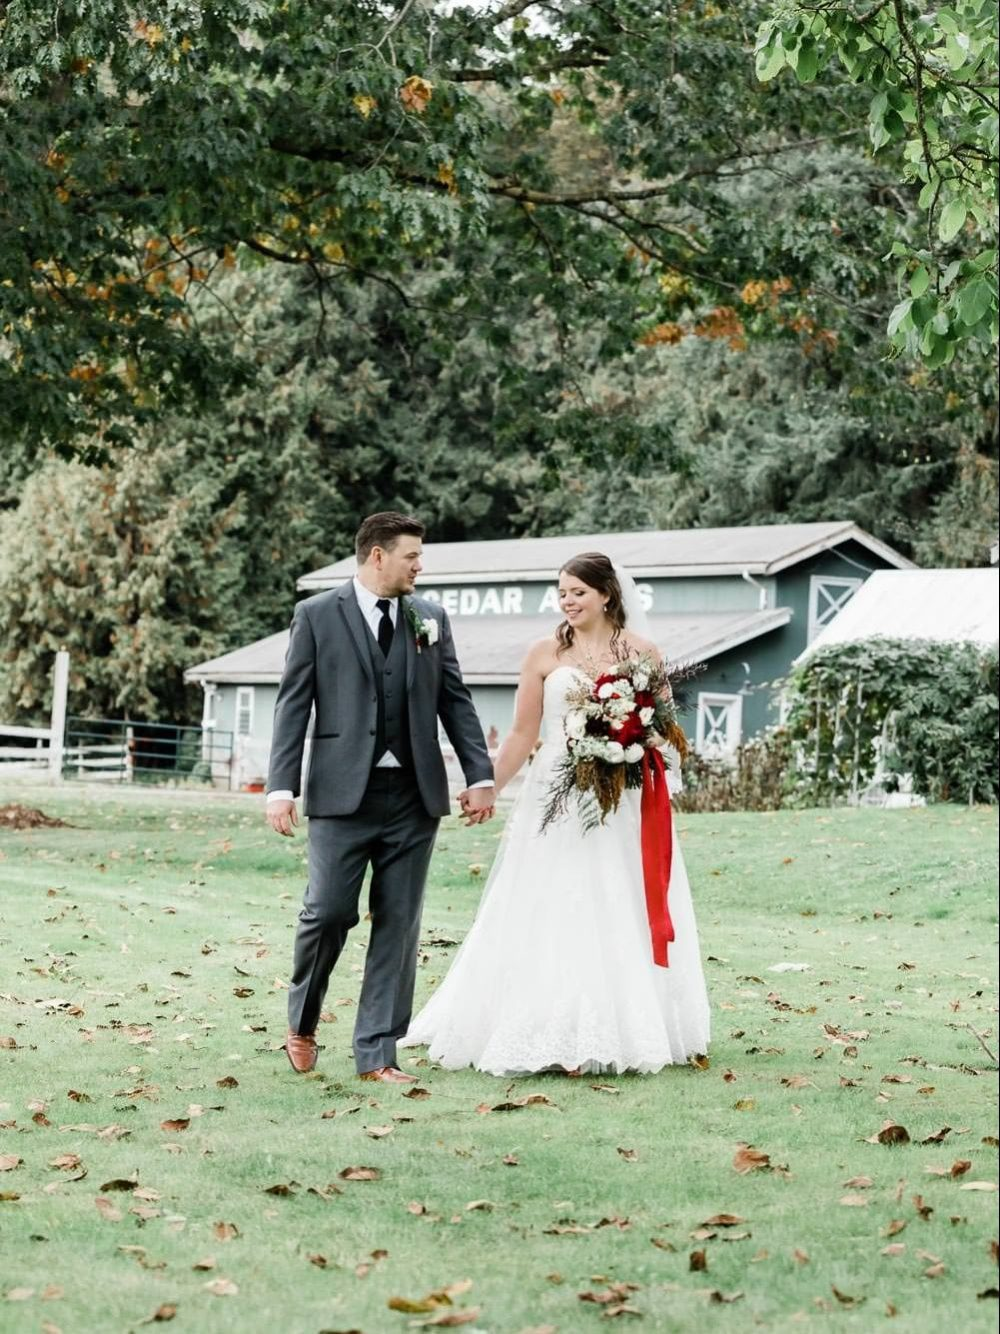 Bride and groom walking in the park | Vancouver Weddings Photographer